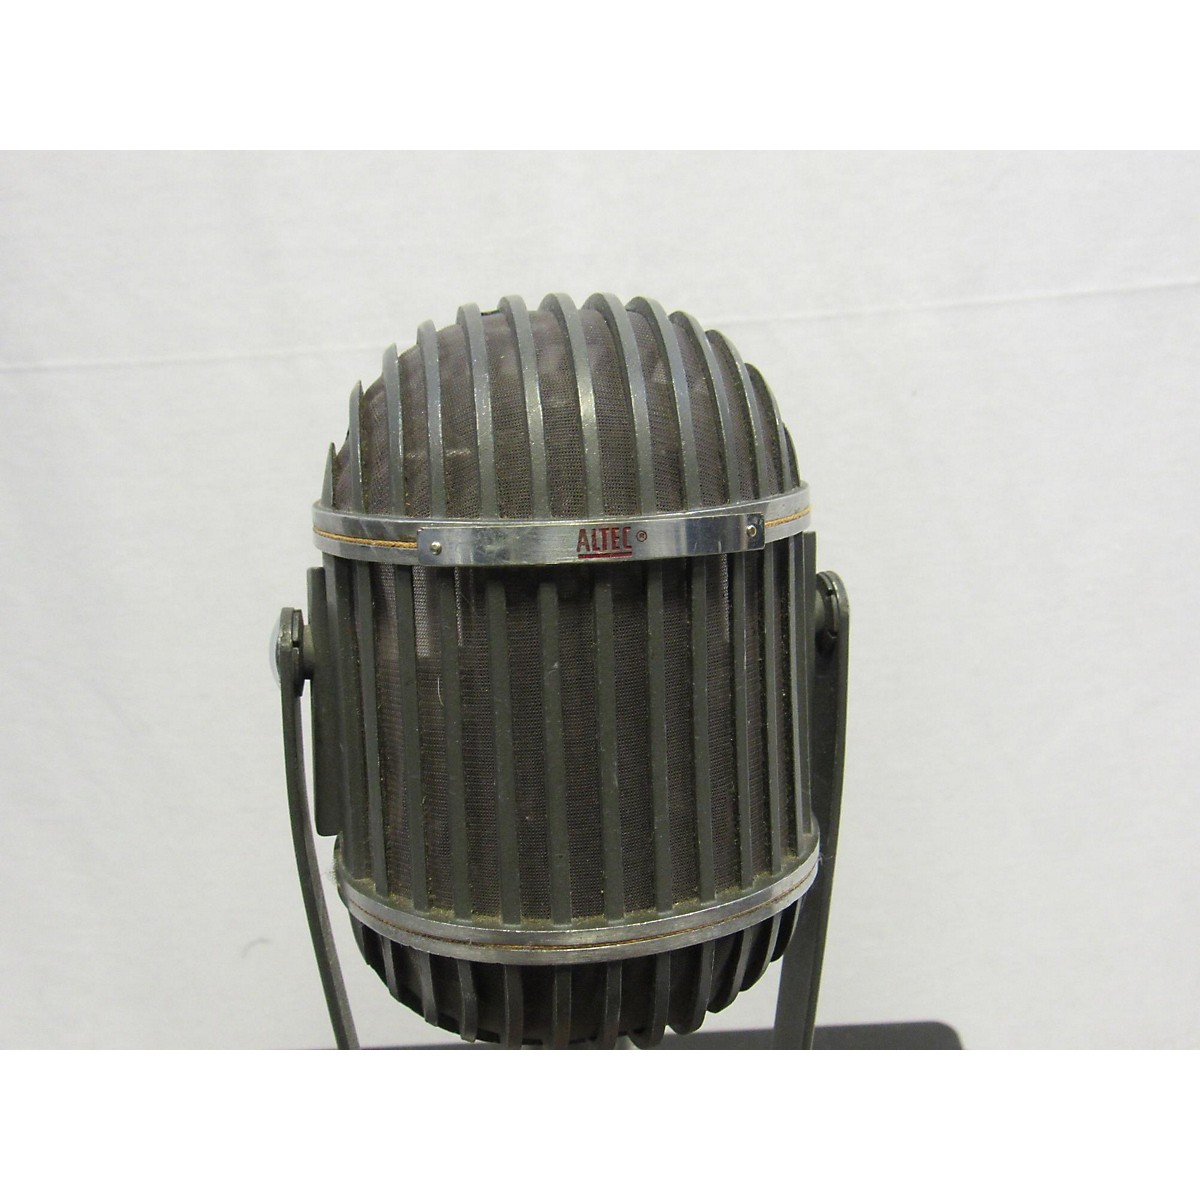 Altec Lansing 1950s 639a Dynamic Microphone